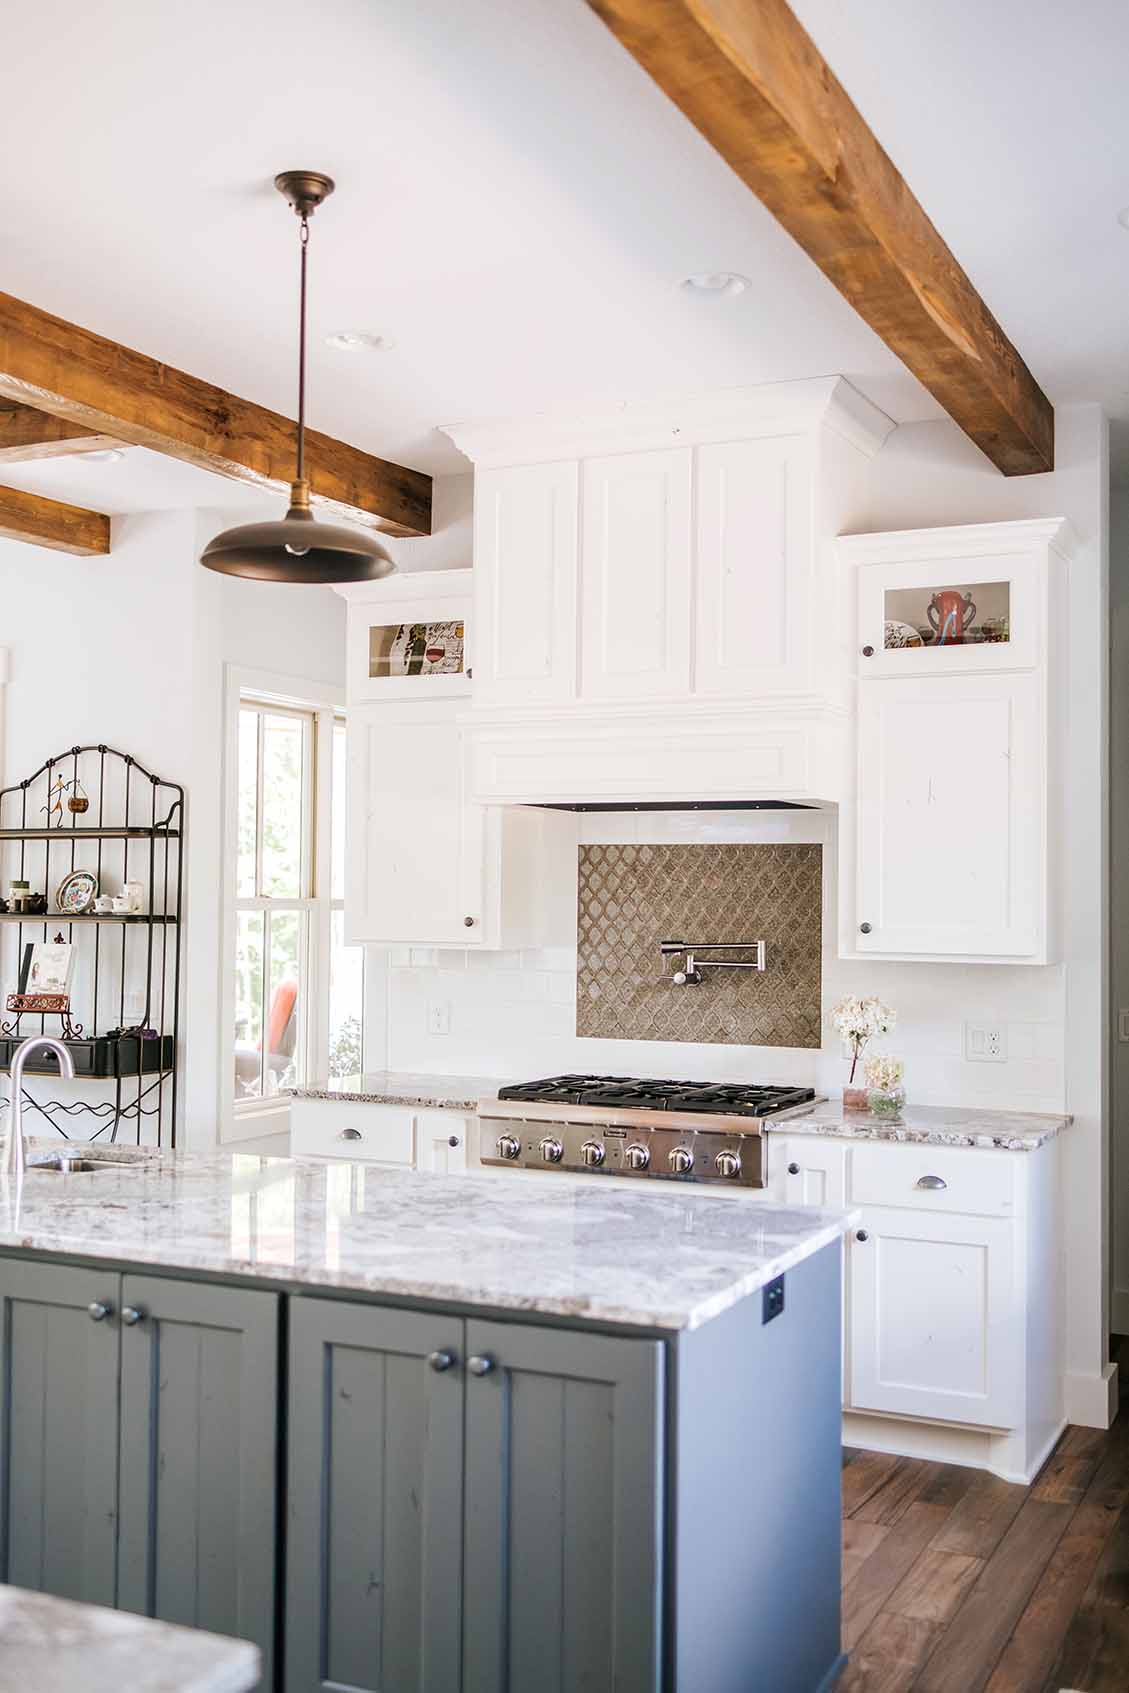 Kitchen Archives - Page 4 of 17 - Alpine Cabinetry : Alpine ...